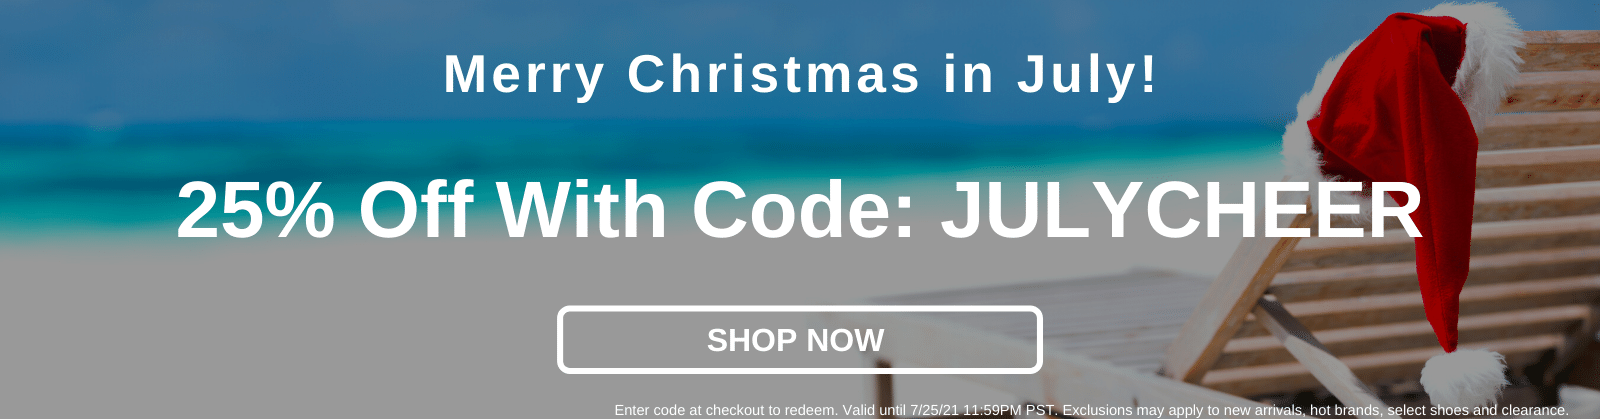 Merry Christmas in July! 25% Off With Code: JULYCHEER [Shop Now]